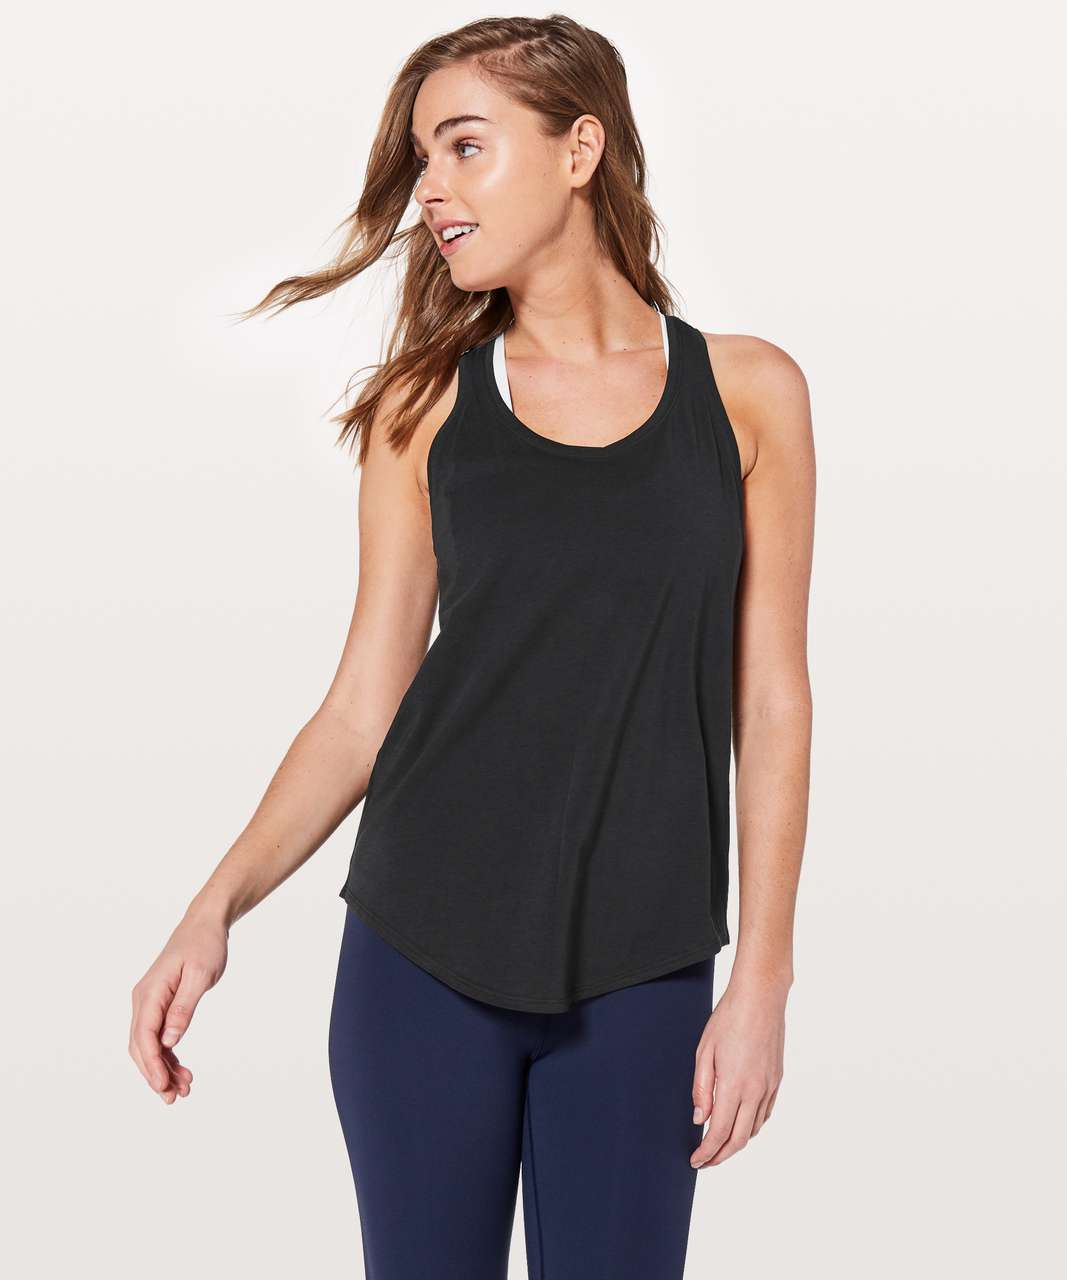 Lululemon Love Tank *Pleated - Black